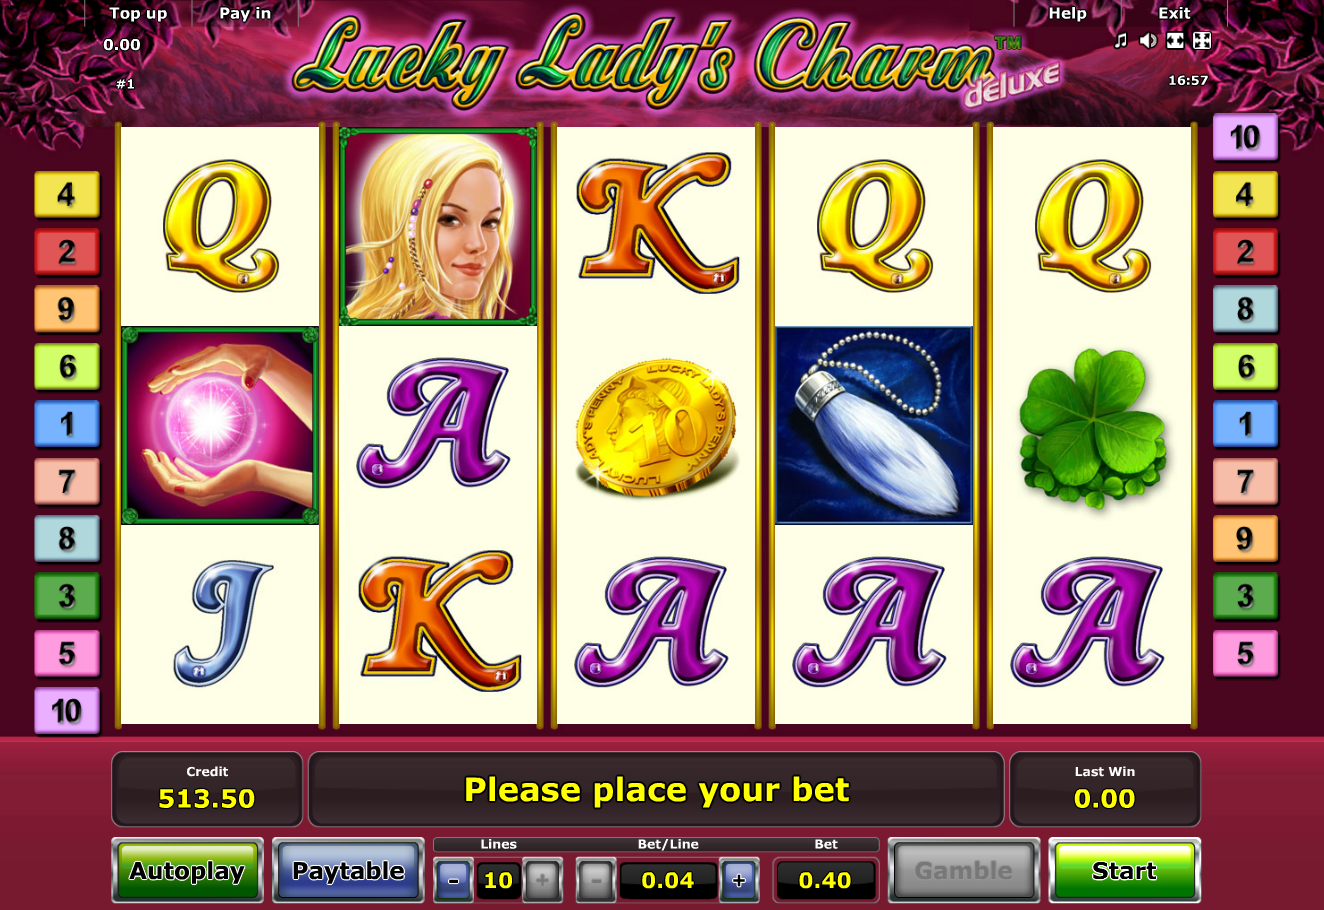 online casino gambling site lady lucky charm